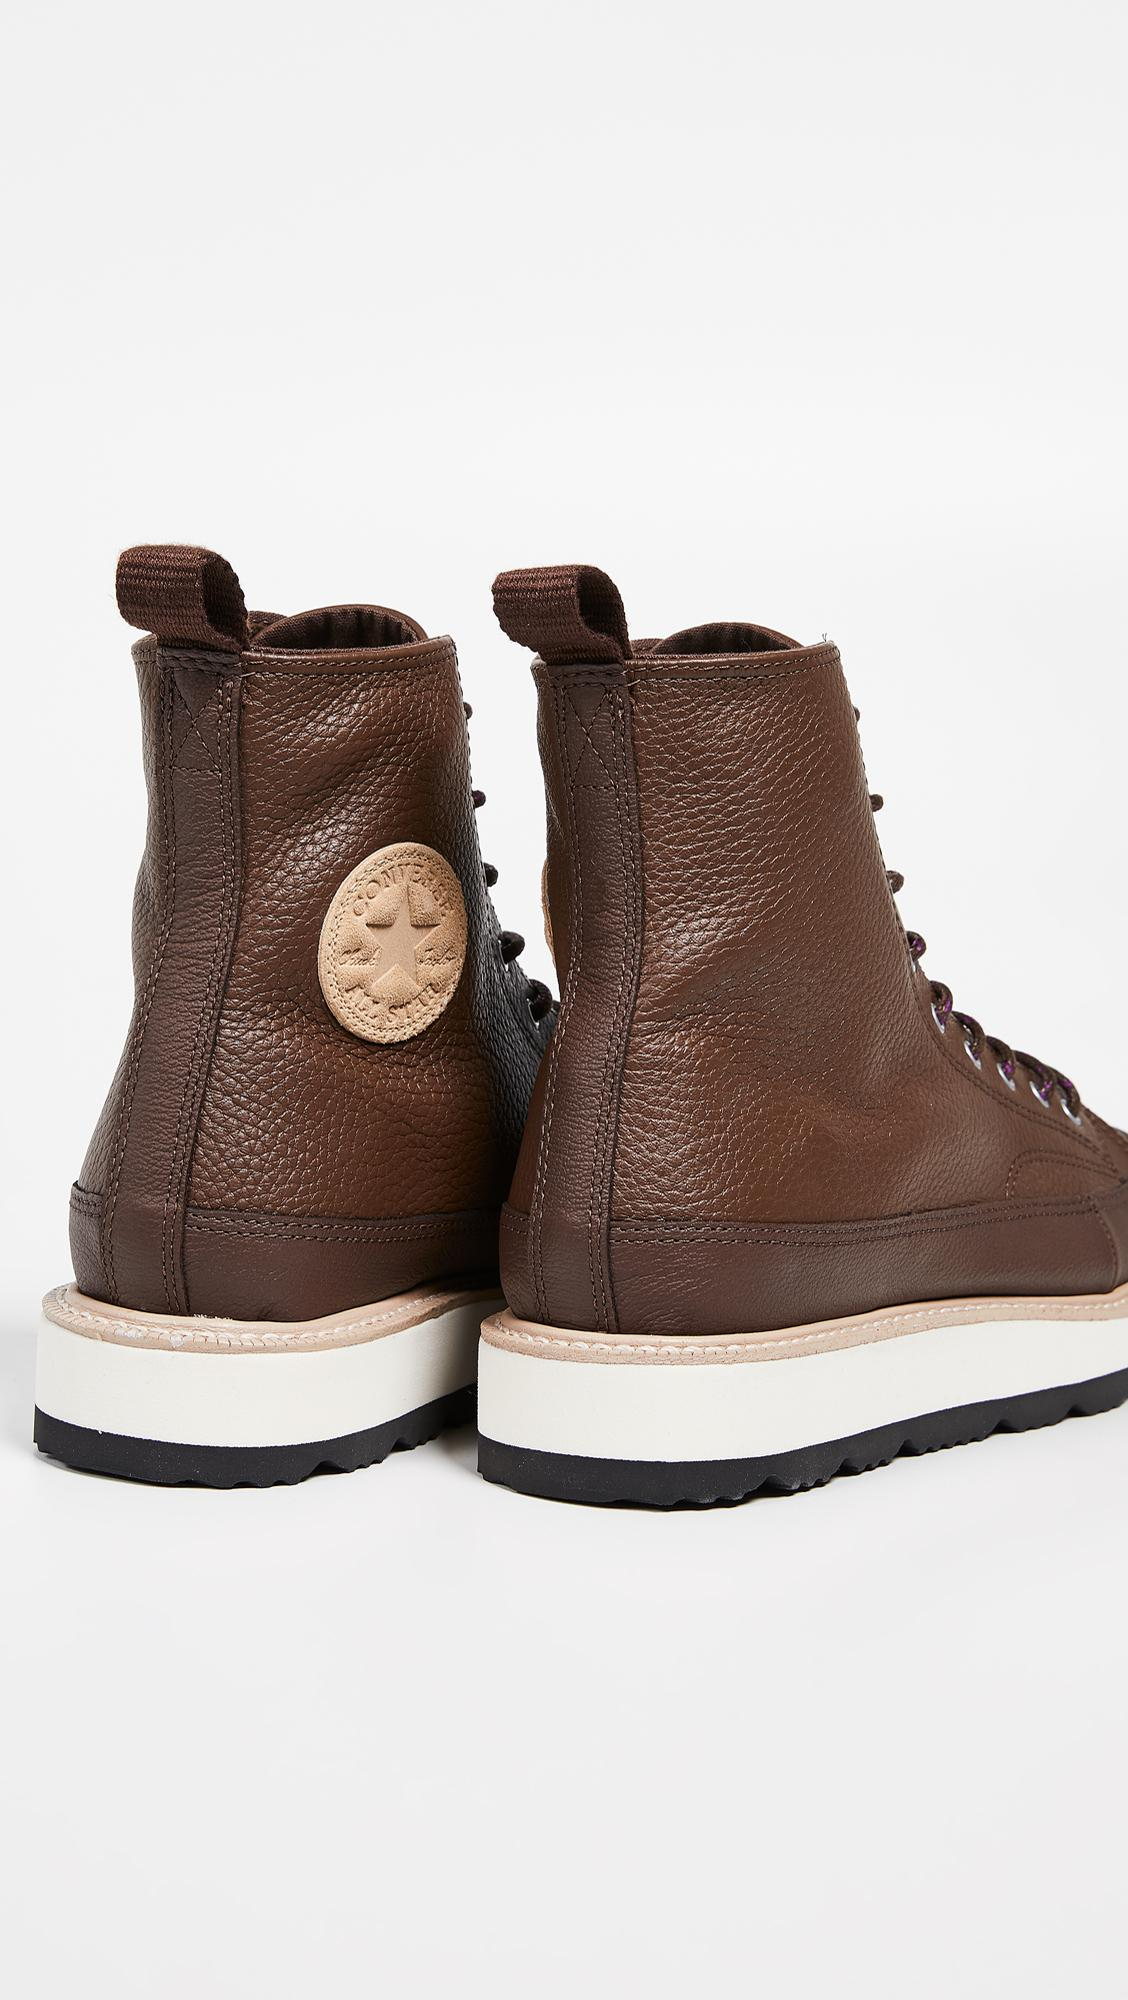 Converse Brown Chuck Taylor Crafted Boot Hi ( Chocolatelight Fawnblack) Lace up Boots for men